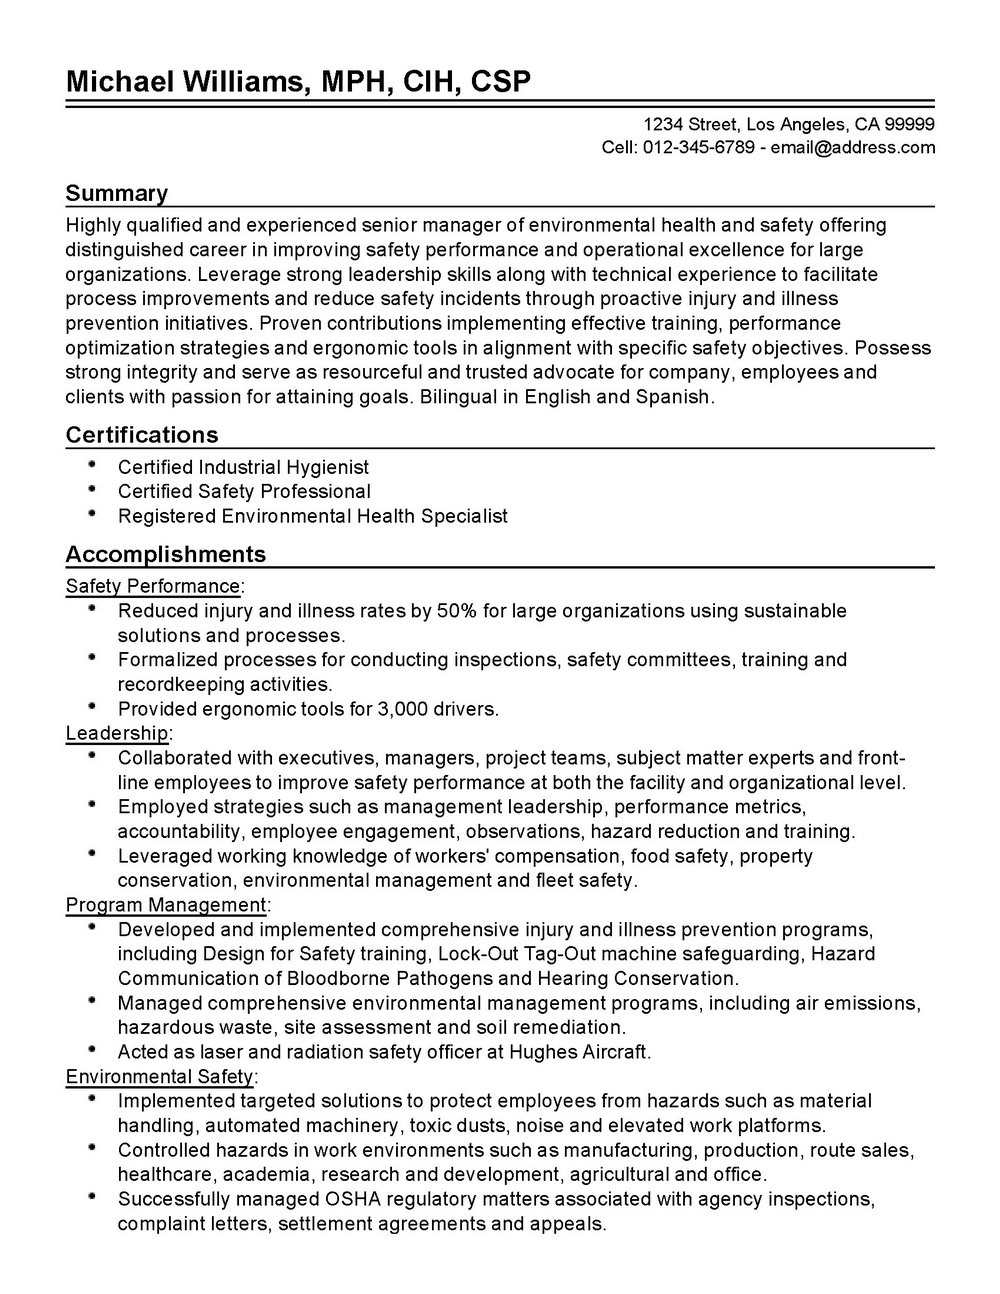 Resume Samples For Environmental Professionals